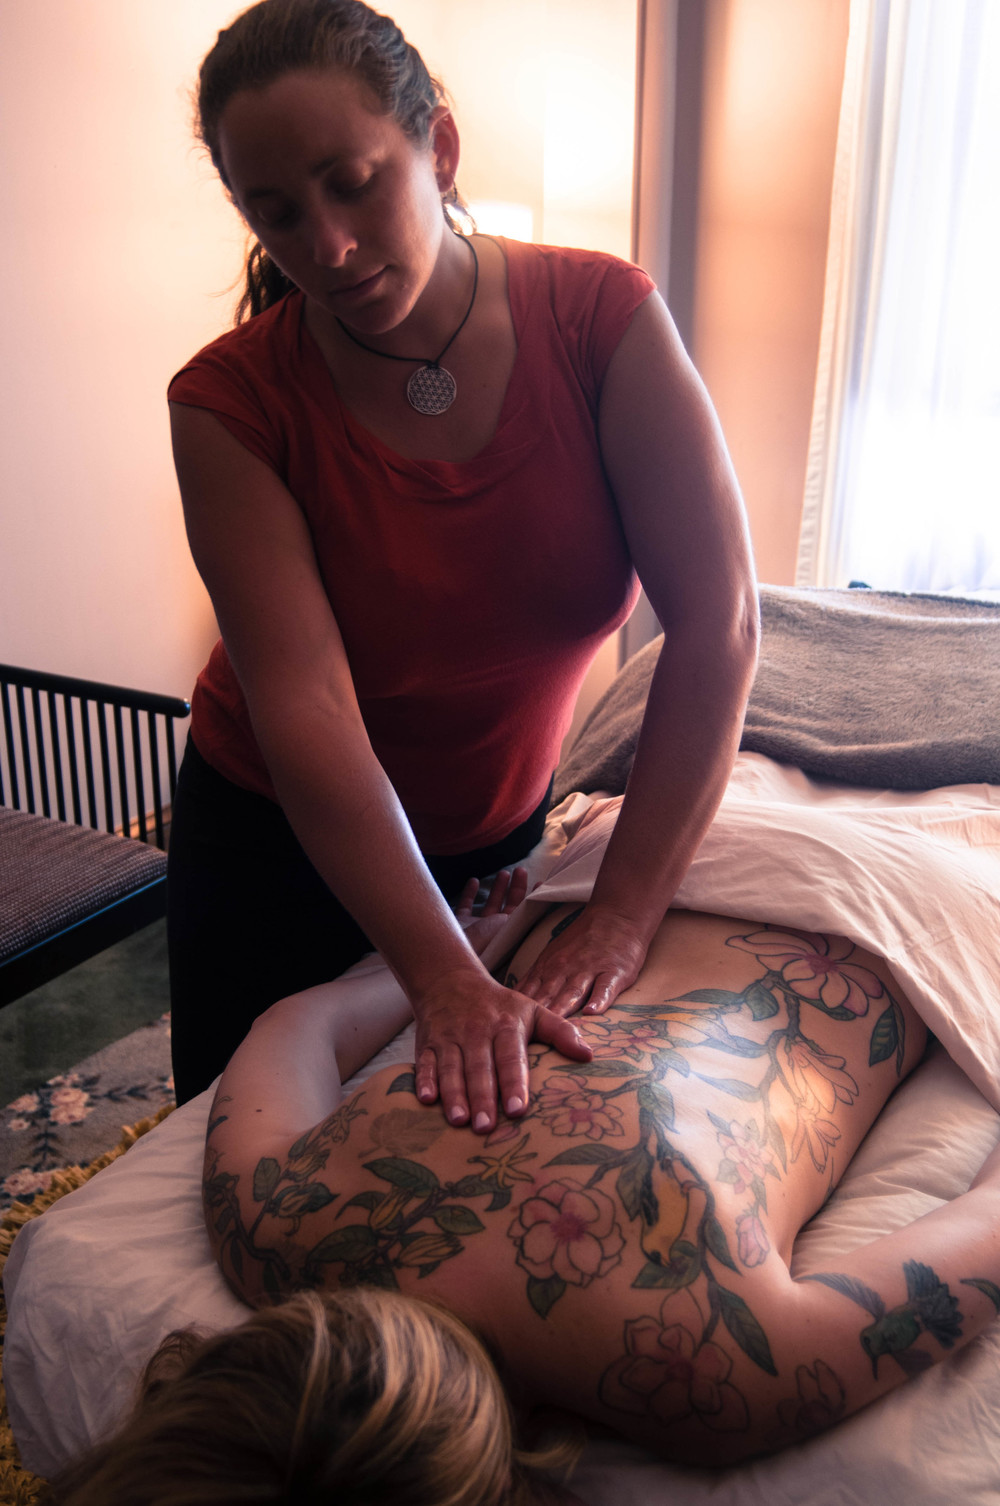 Sandra Benson, LMT working with a valued client.